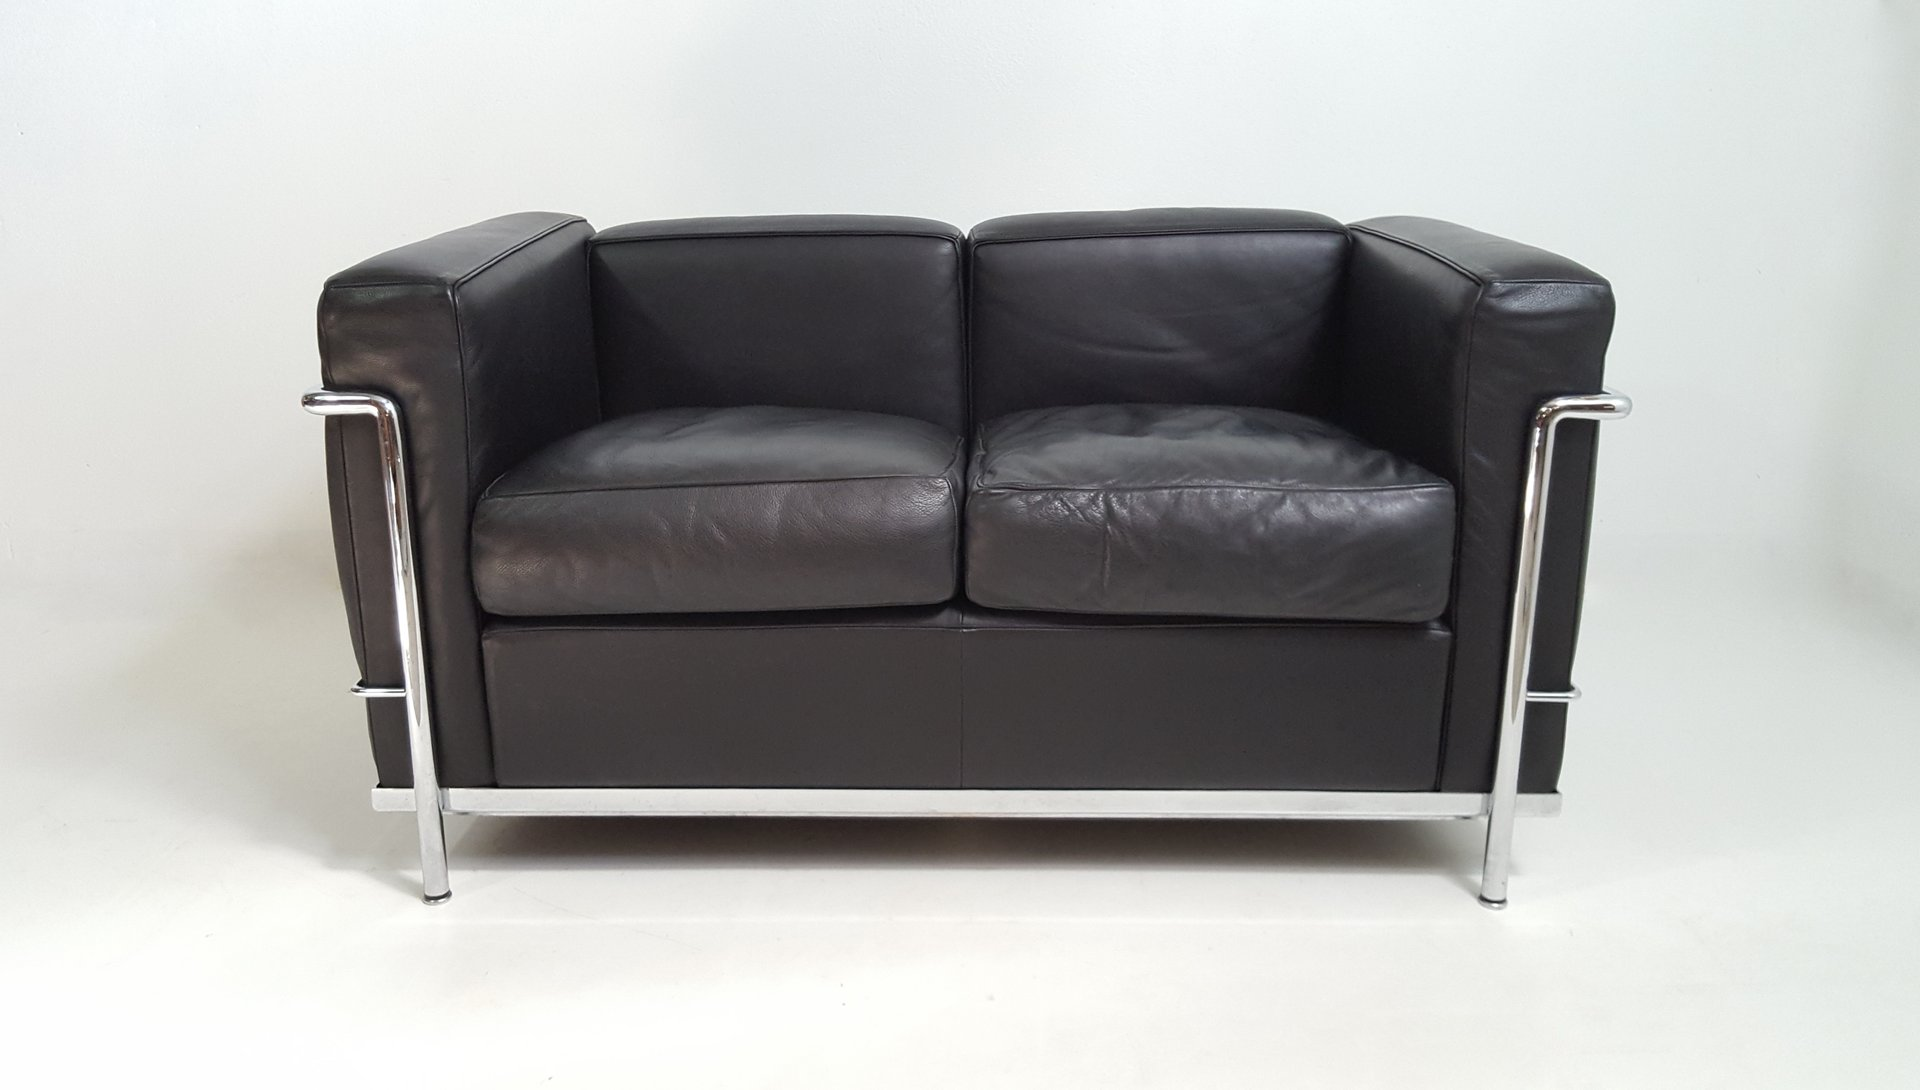 le corbusier sofas le corbusier chairs furniture from swivel uk thesofa. Black Bedroom Furniture Sets. Home Design Ideas